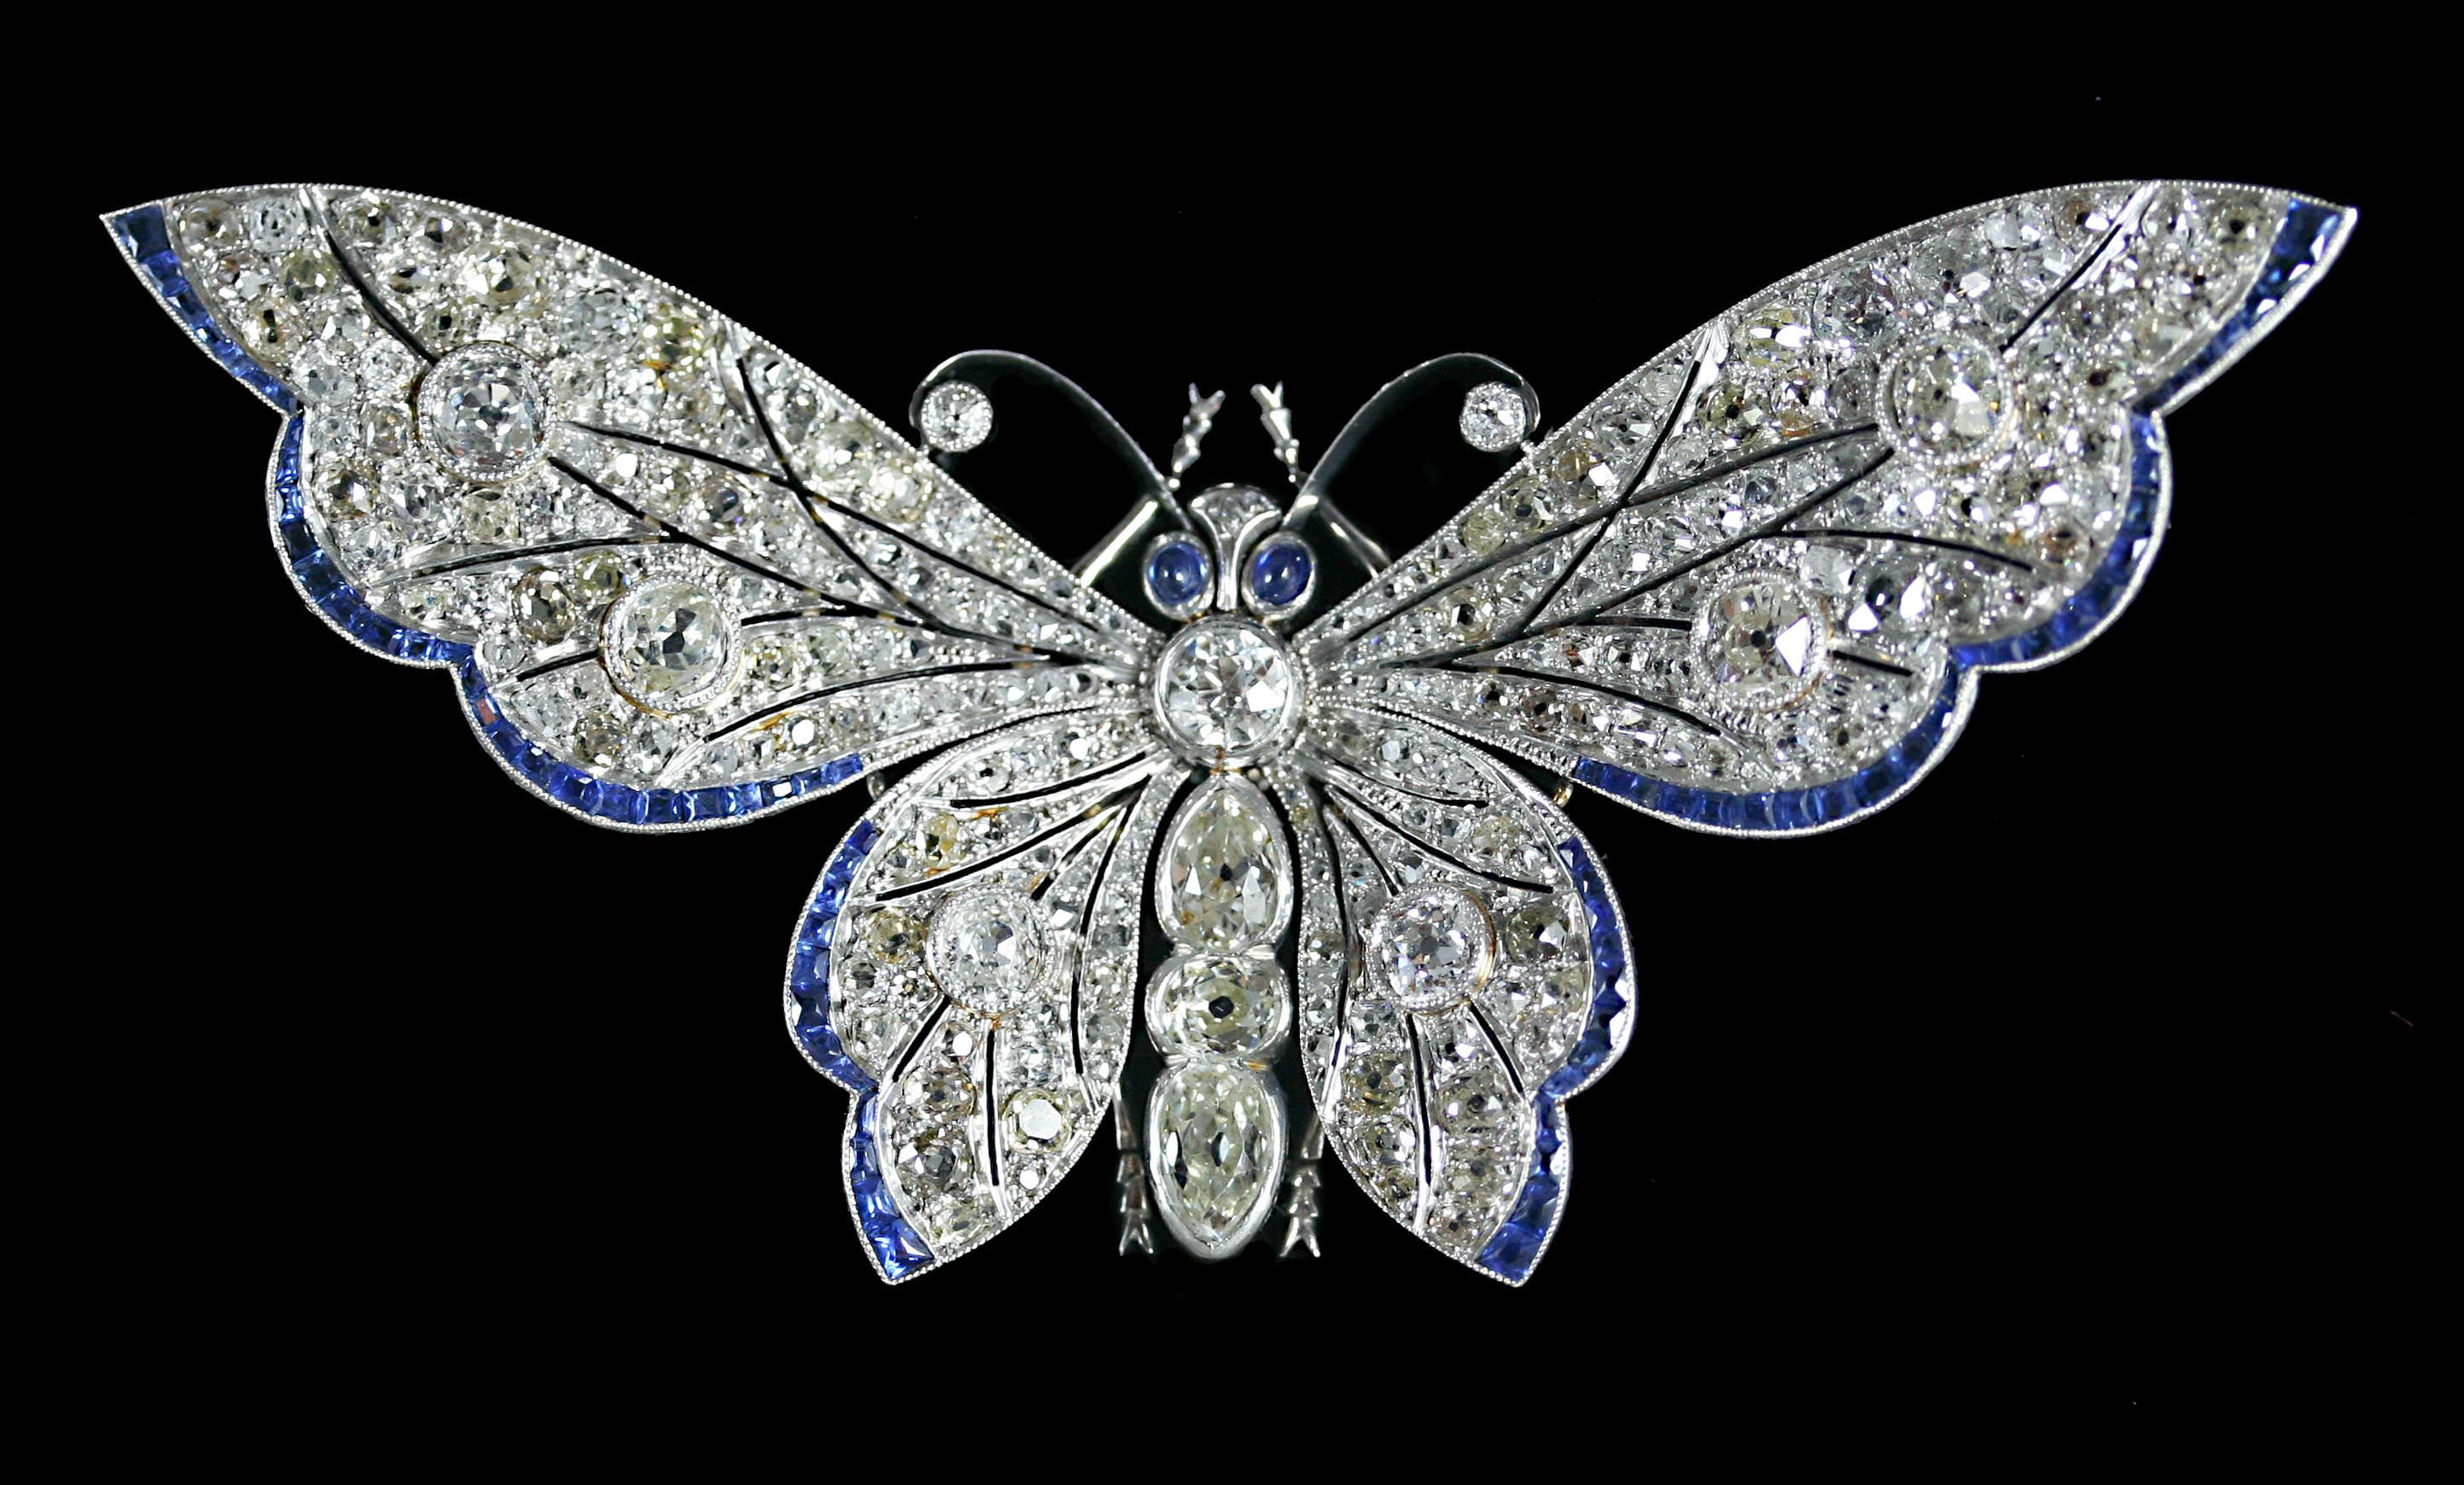 sapphire ruby silver antique gold sku butterfly topped emerald nouveau brooch art diamond